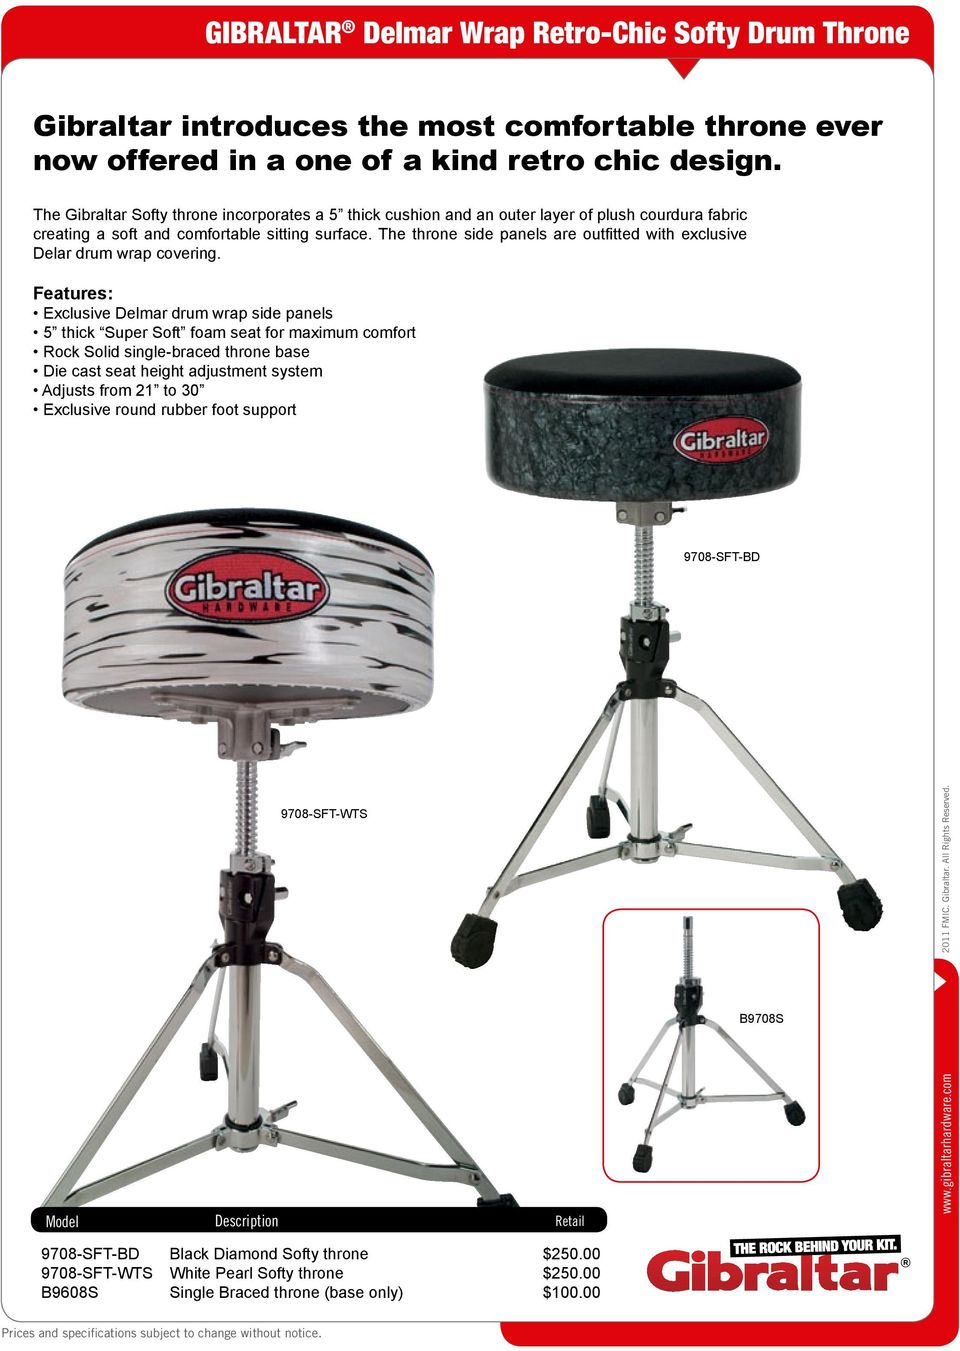 The throne side panels are outfitted with exclusive Delar drum wrap covering.